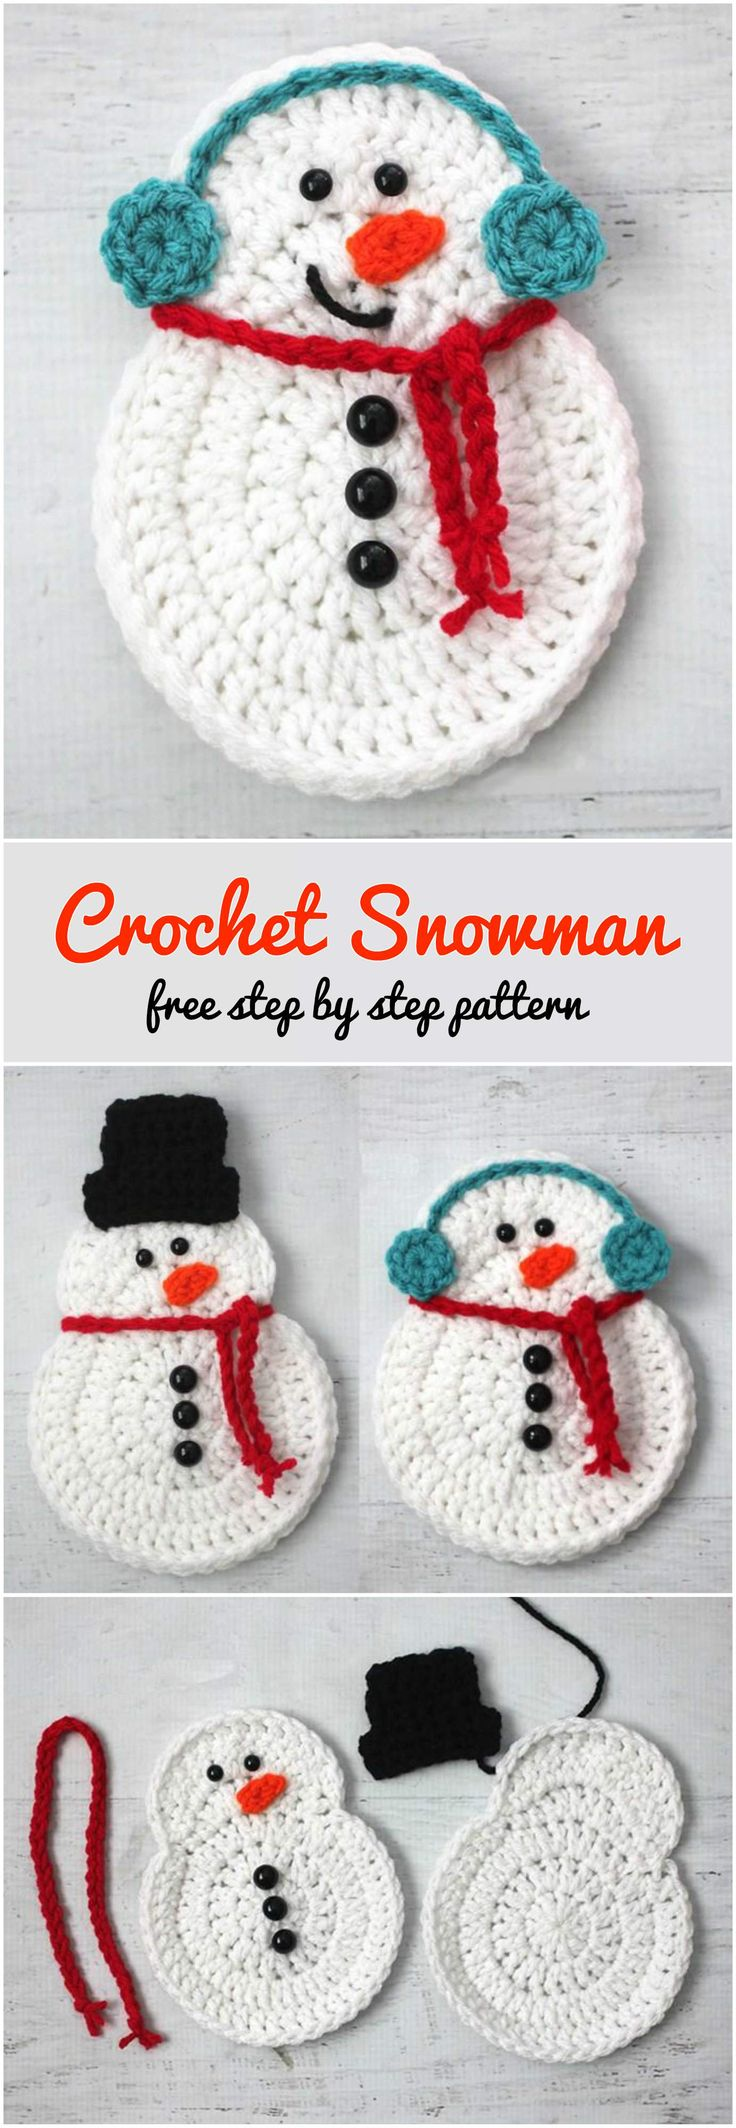 Crochet Snowman Step by Step